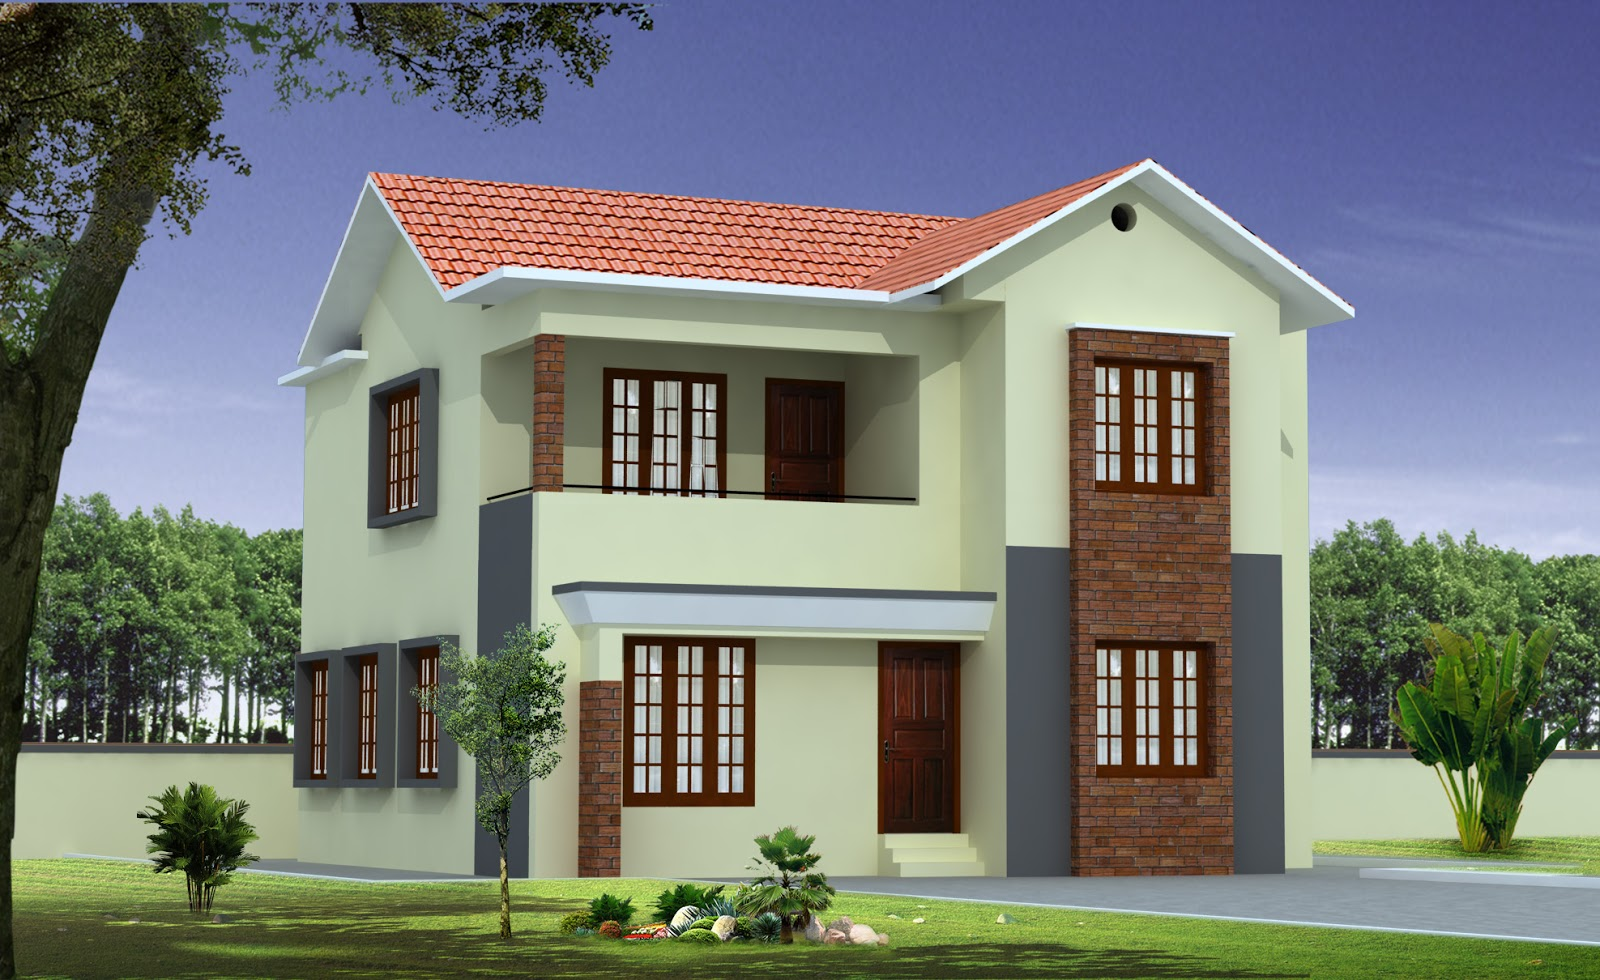 Build a building latest home designs New ideas in home design